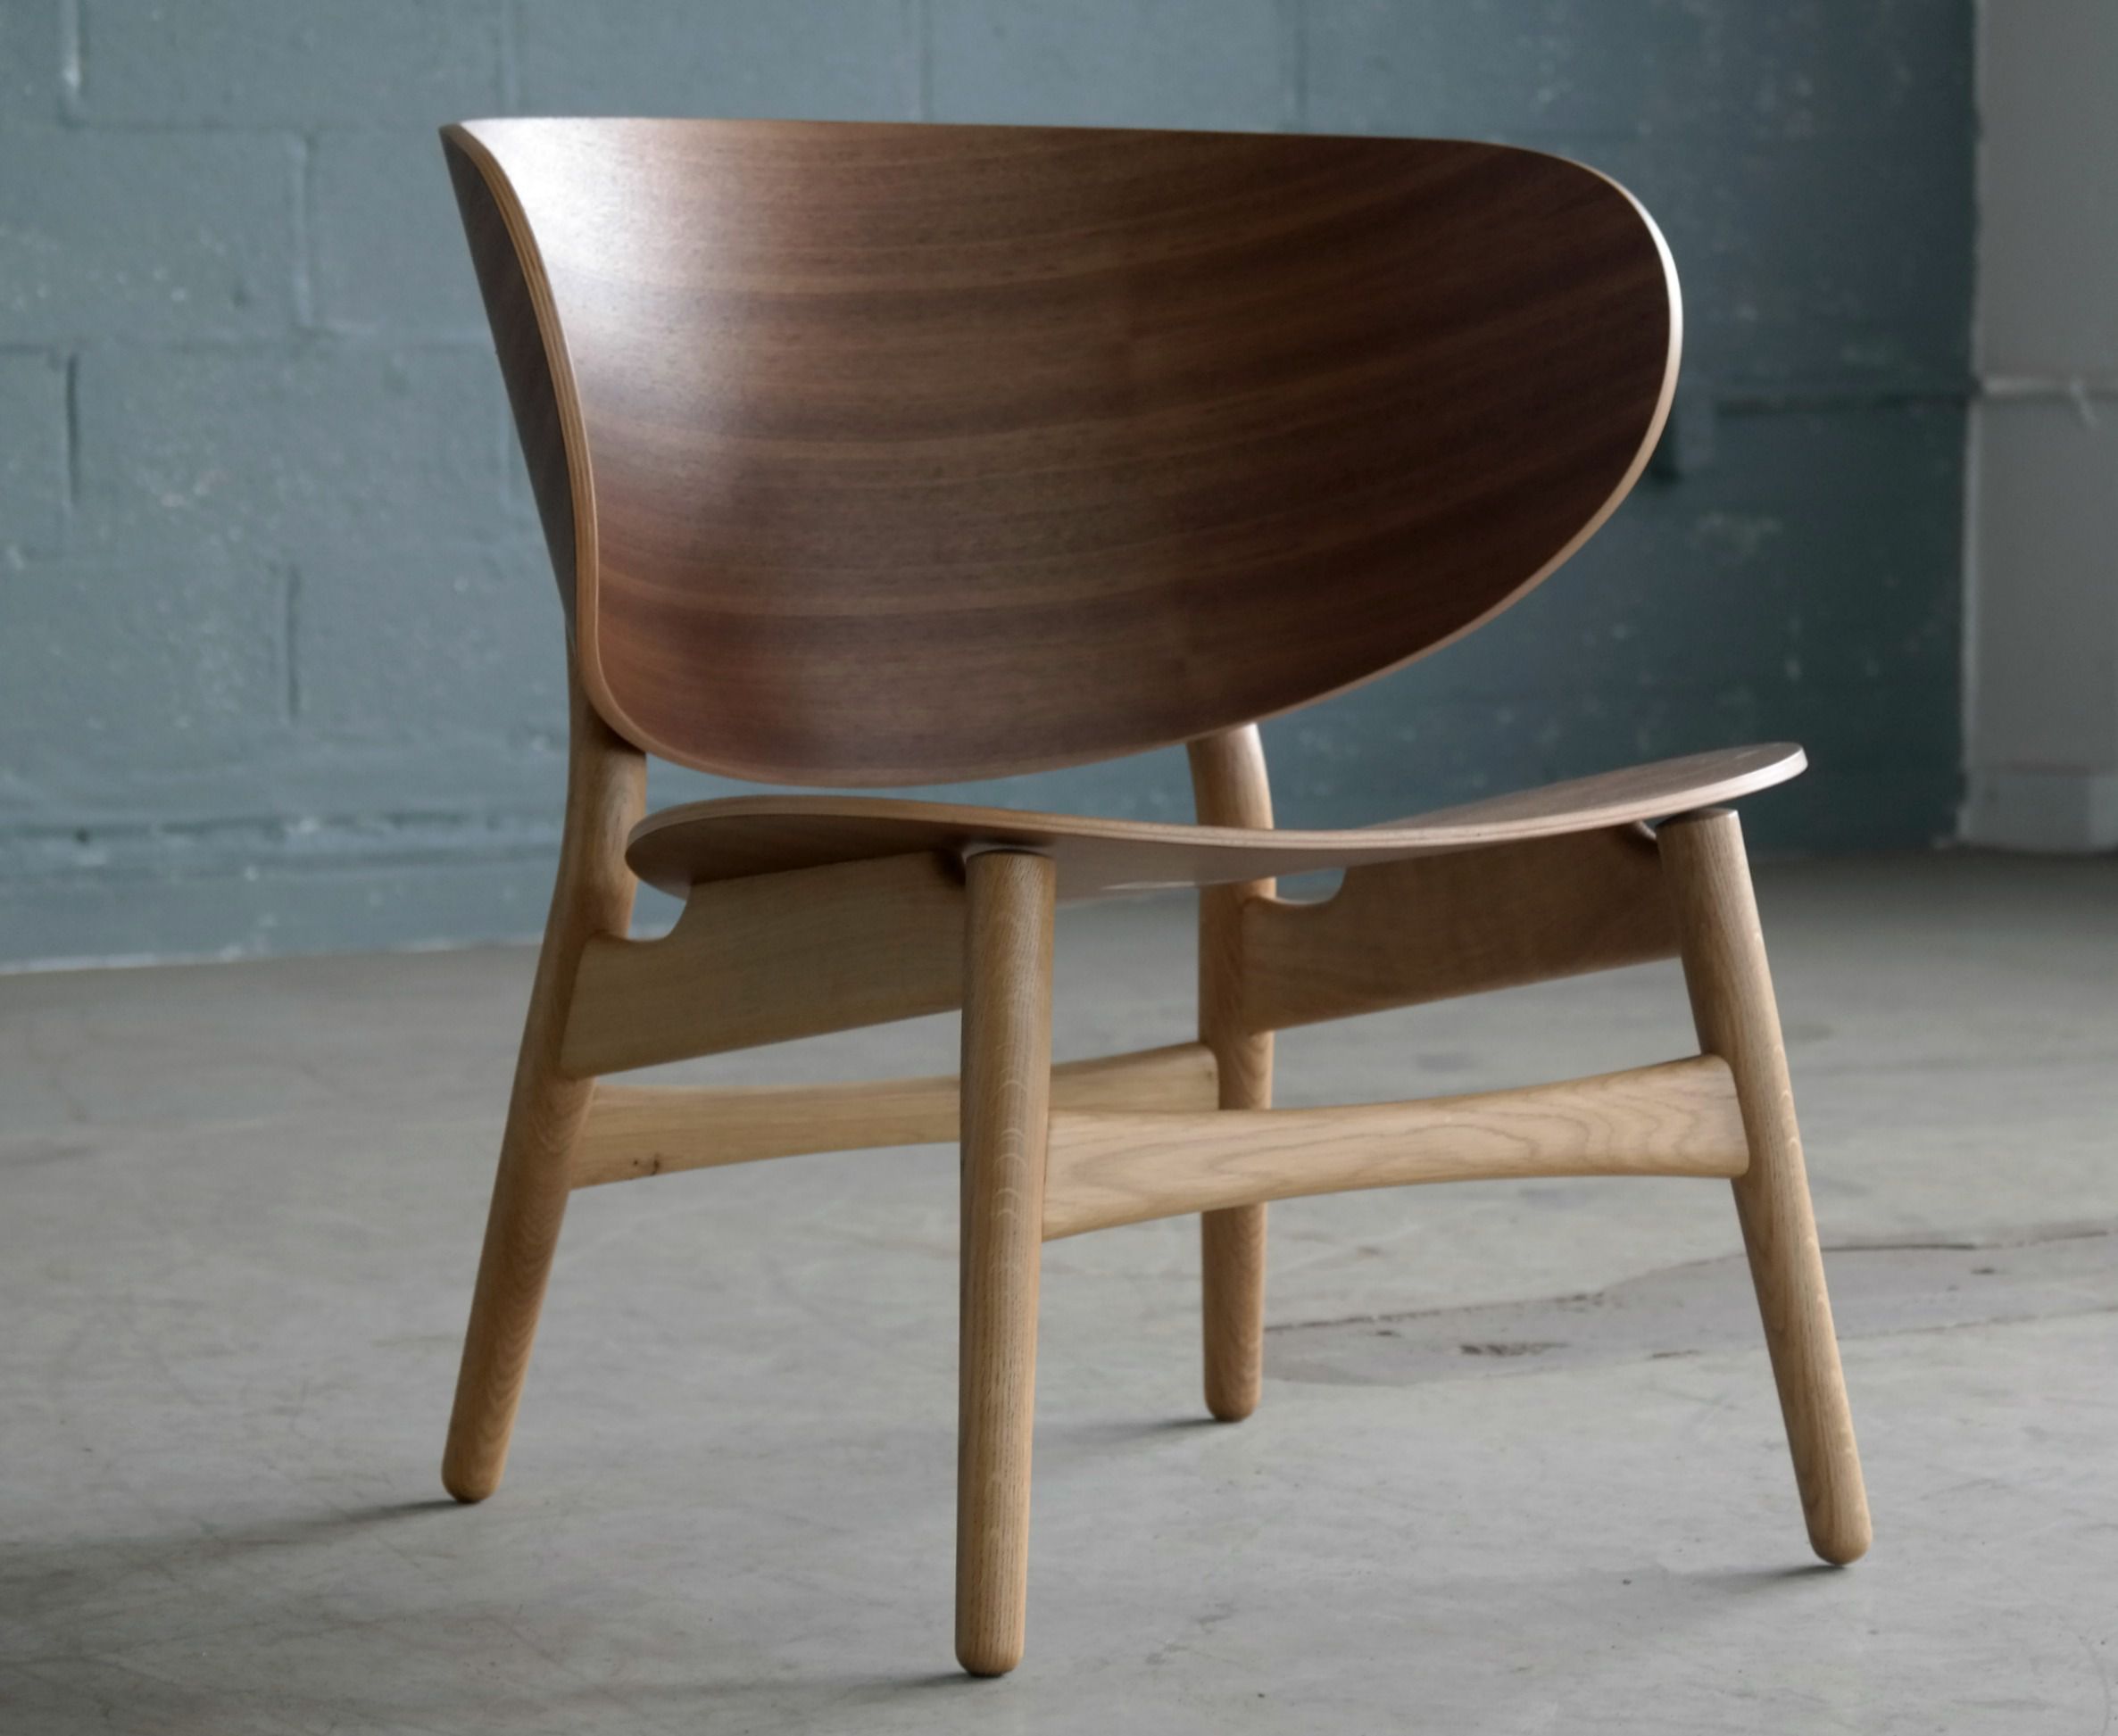 hans wegner for getama model ge1936 venus chair image 2 of 8